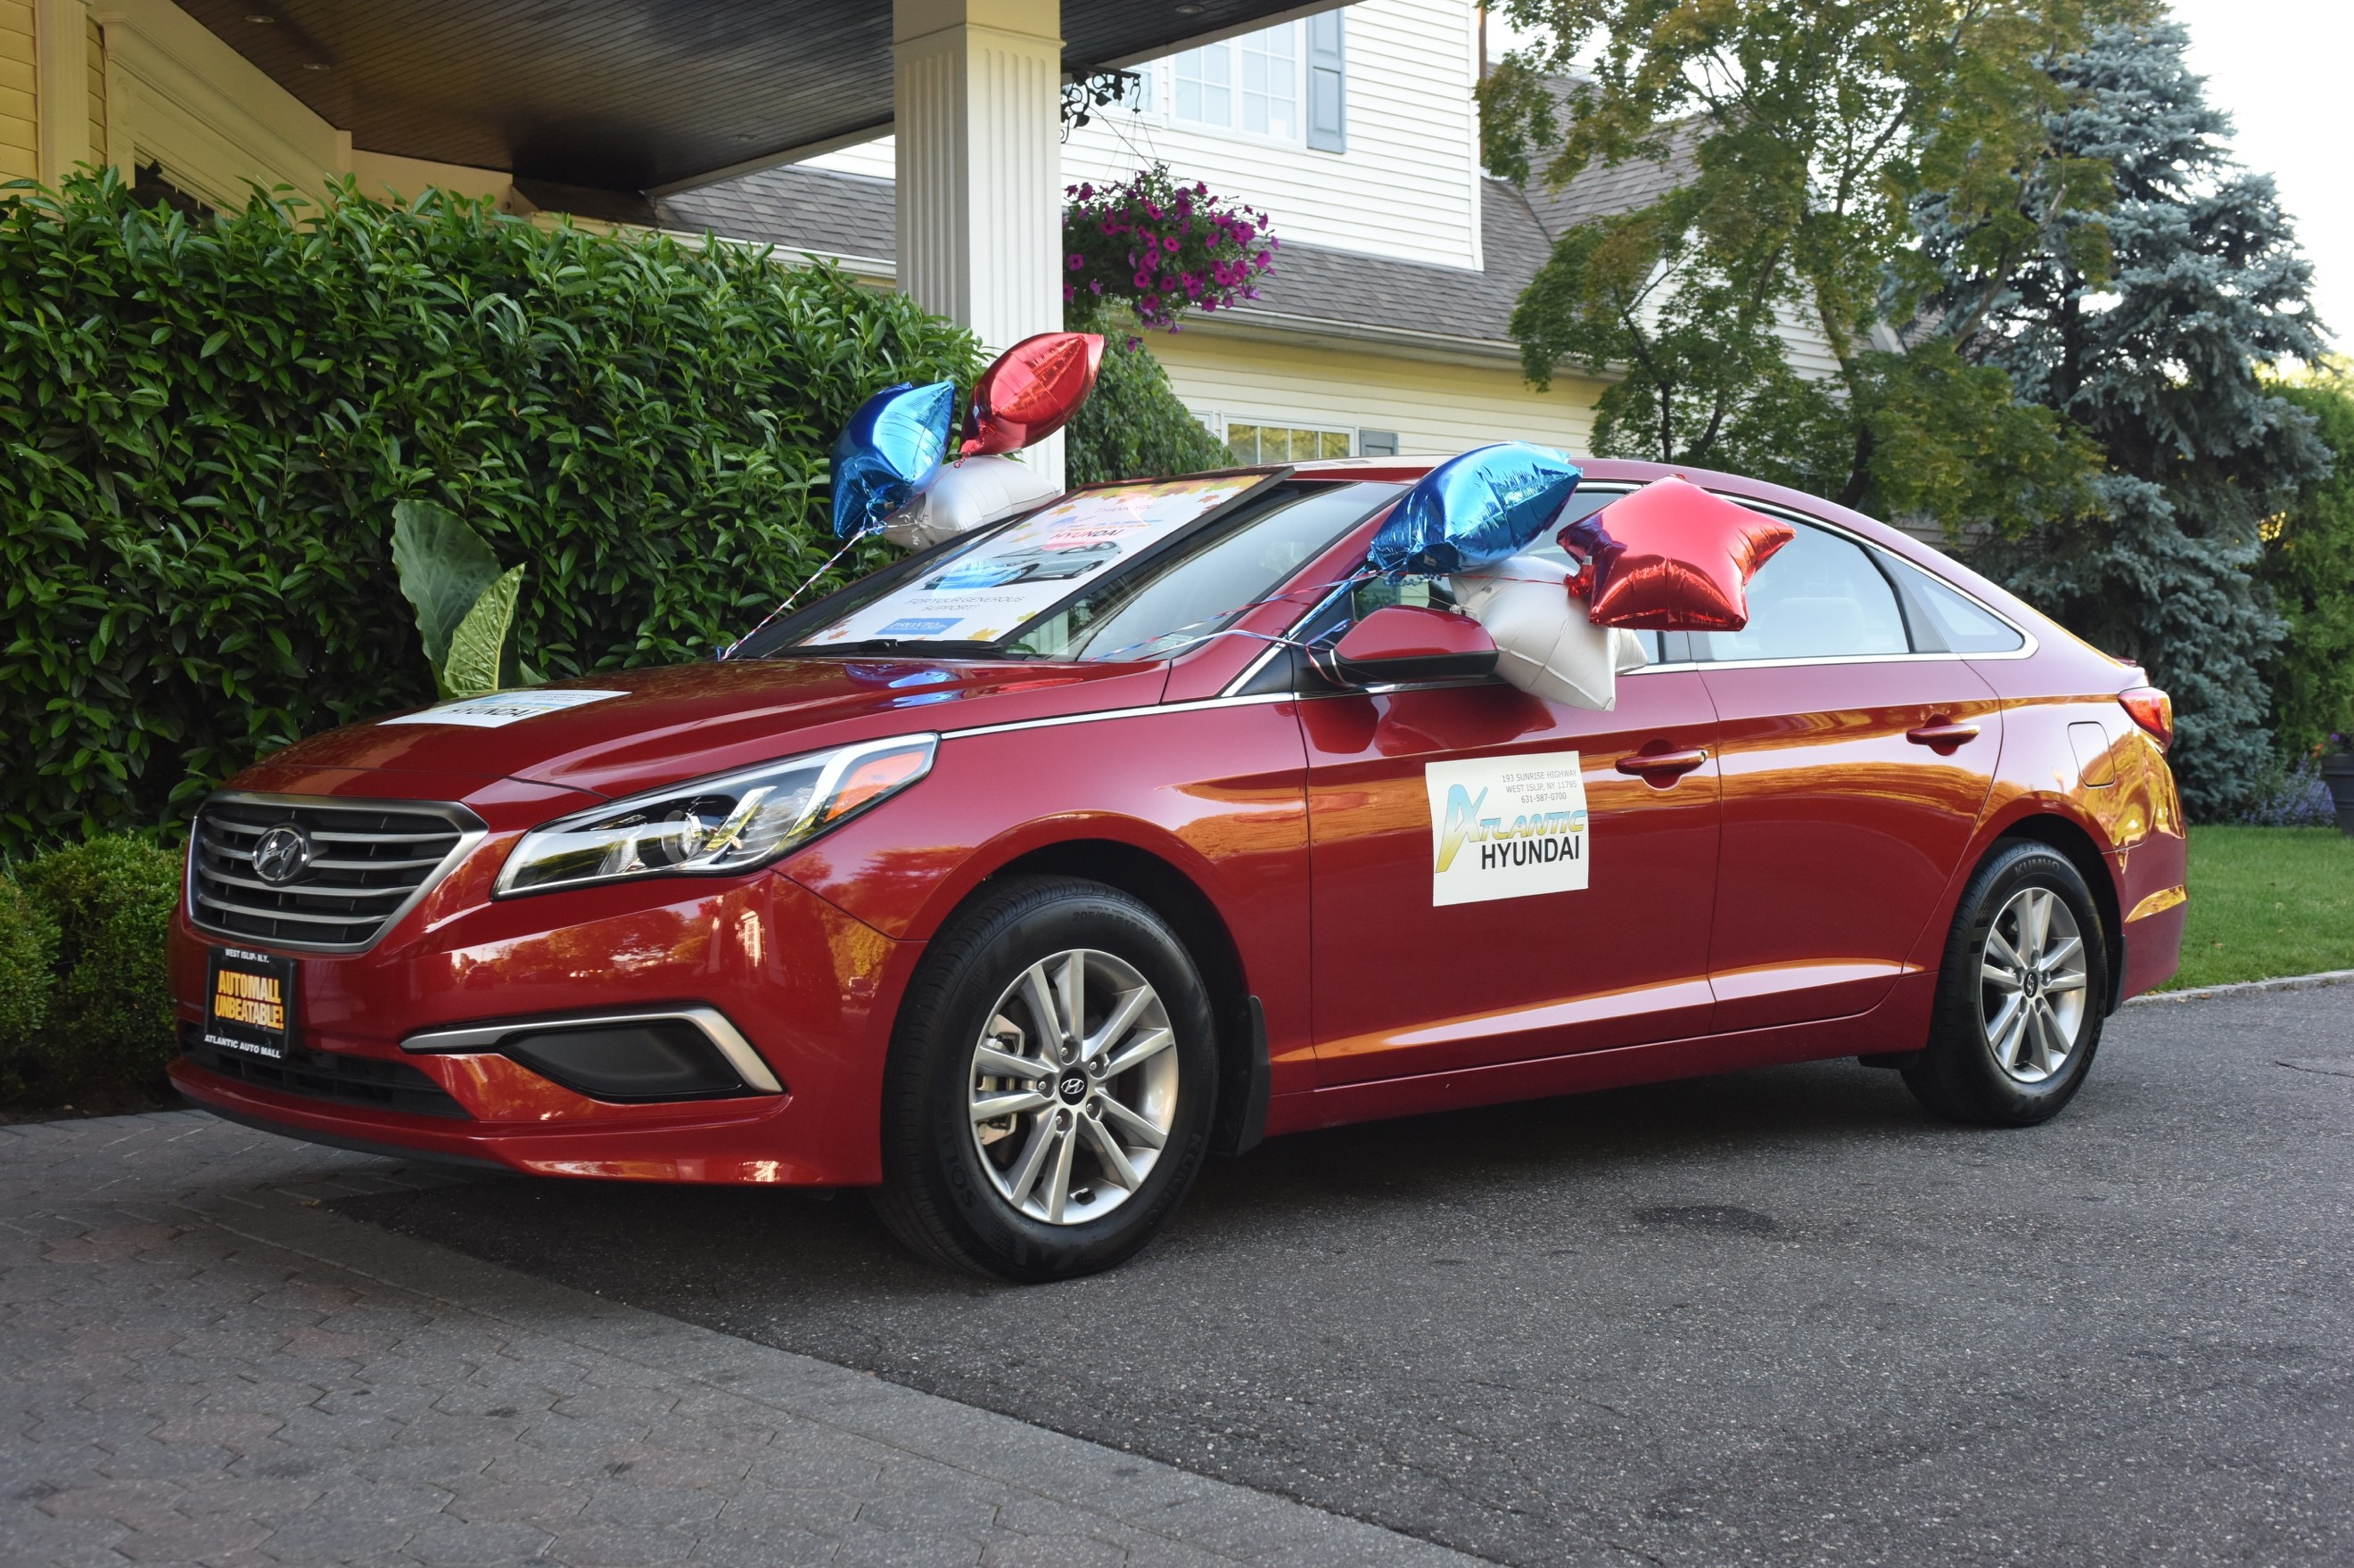 Atlantic Hyundai Donates 2017 Hyundai Sonata for PRONTO Gala